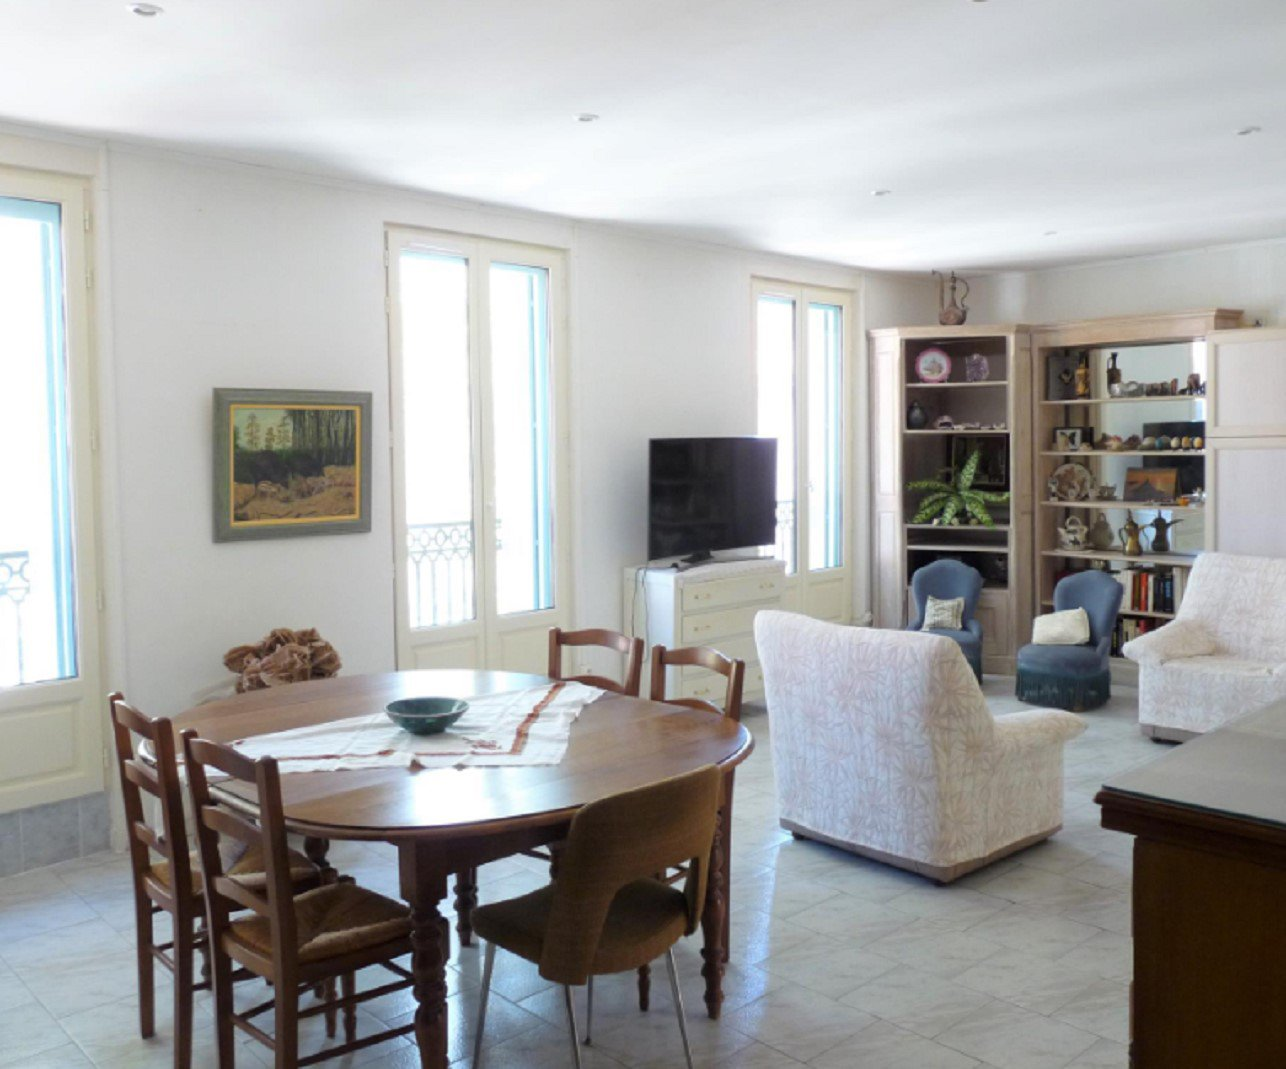 Great situation for this 1 bedroom apartment